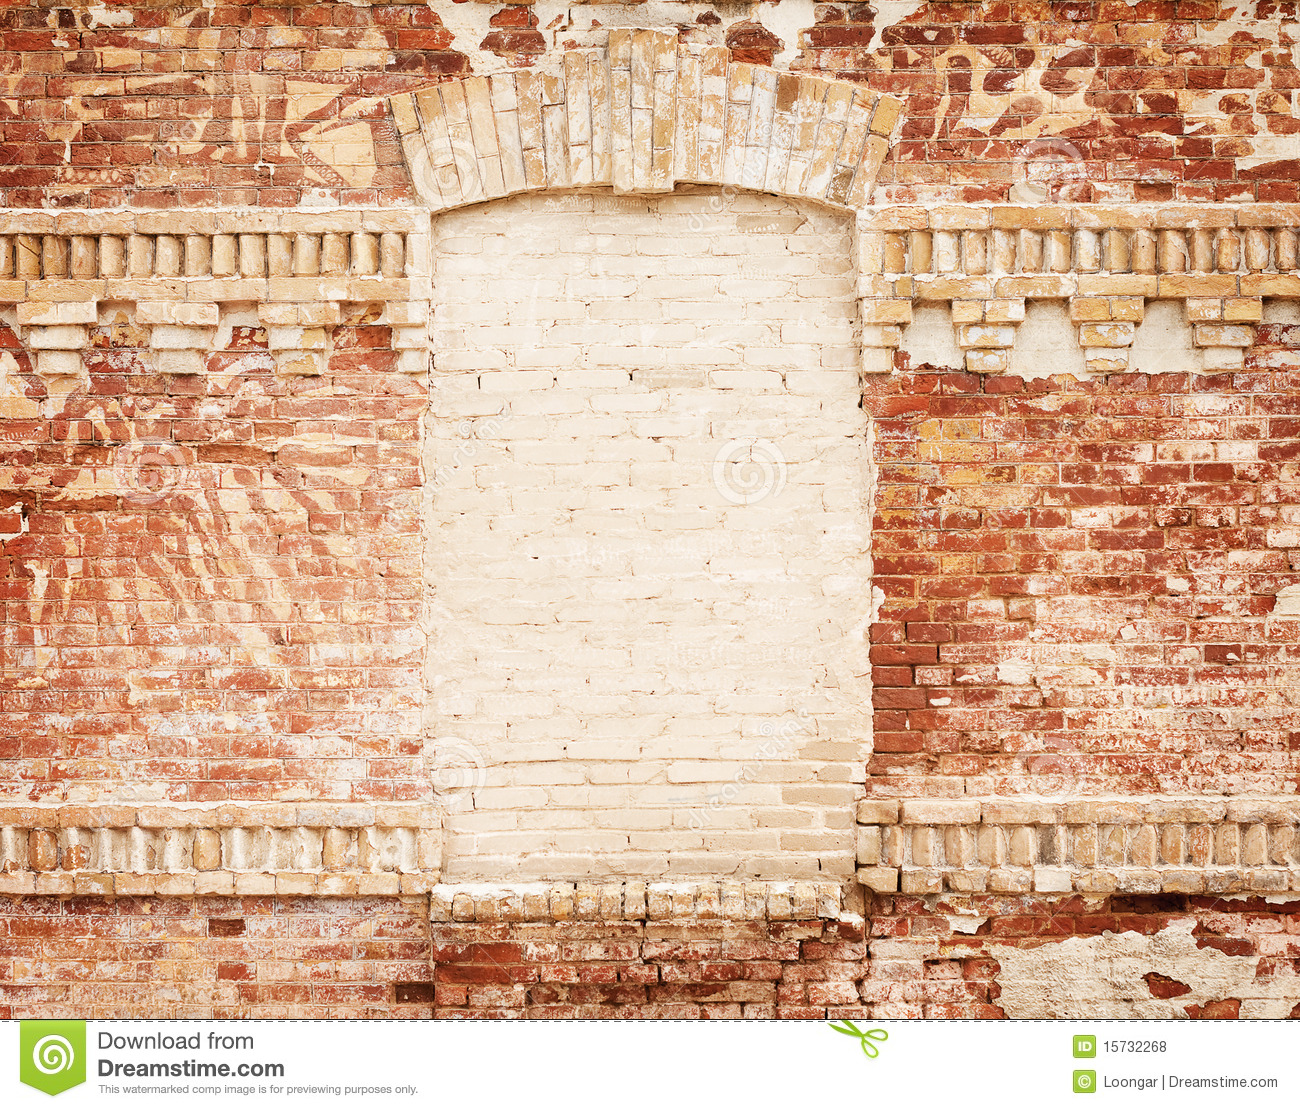 Old brick wall as a frame 01 stock photo image 18377500 - Grunge Brick Wall With Blank Frame Royalty Free Stock Photos